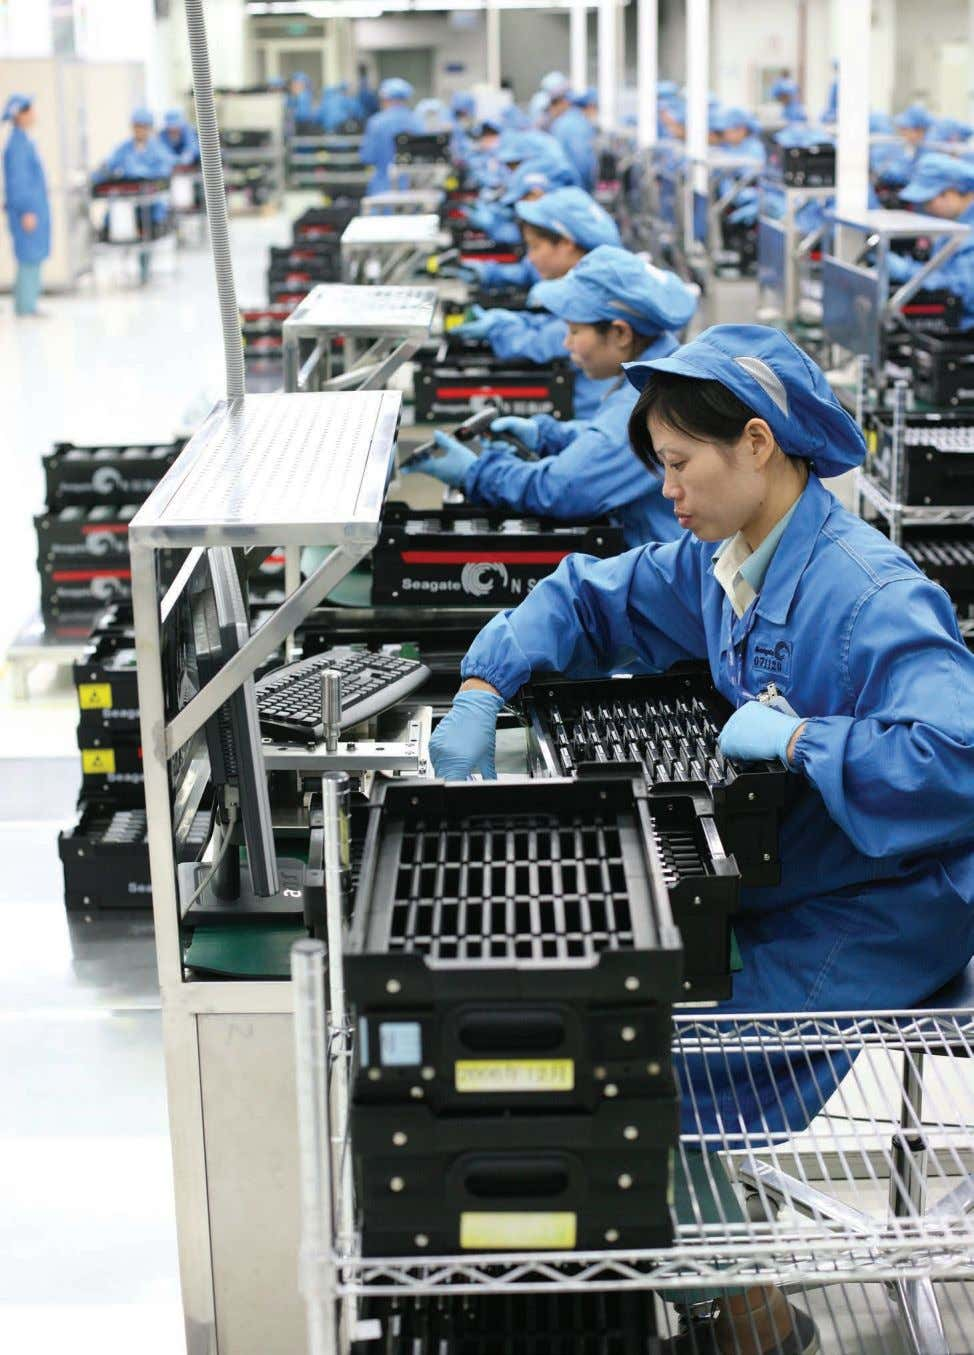 BUSY: Workers perform final testing at a Seagate factory in Wuxi, China, before sending computer